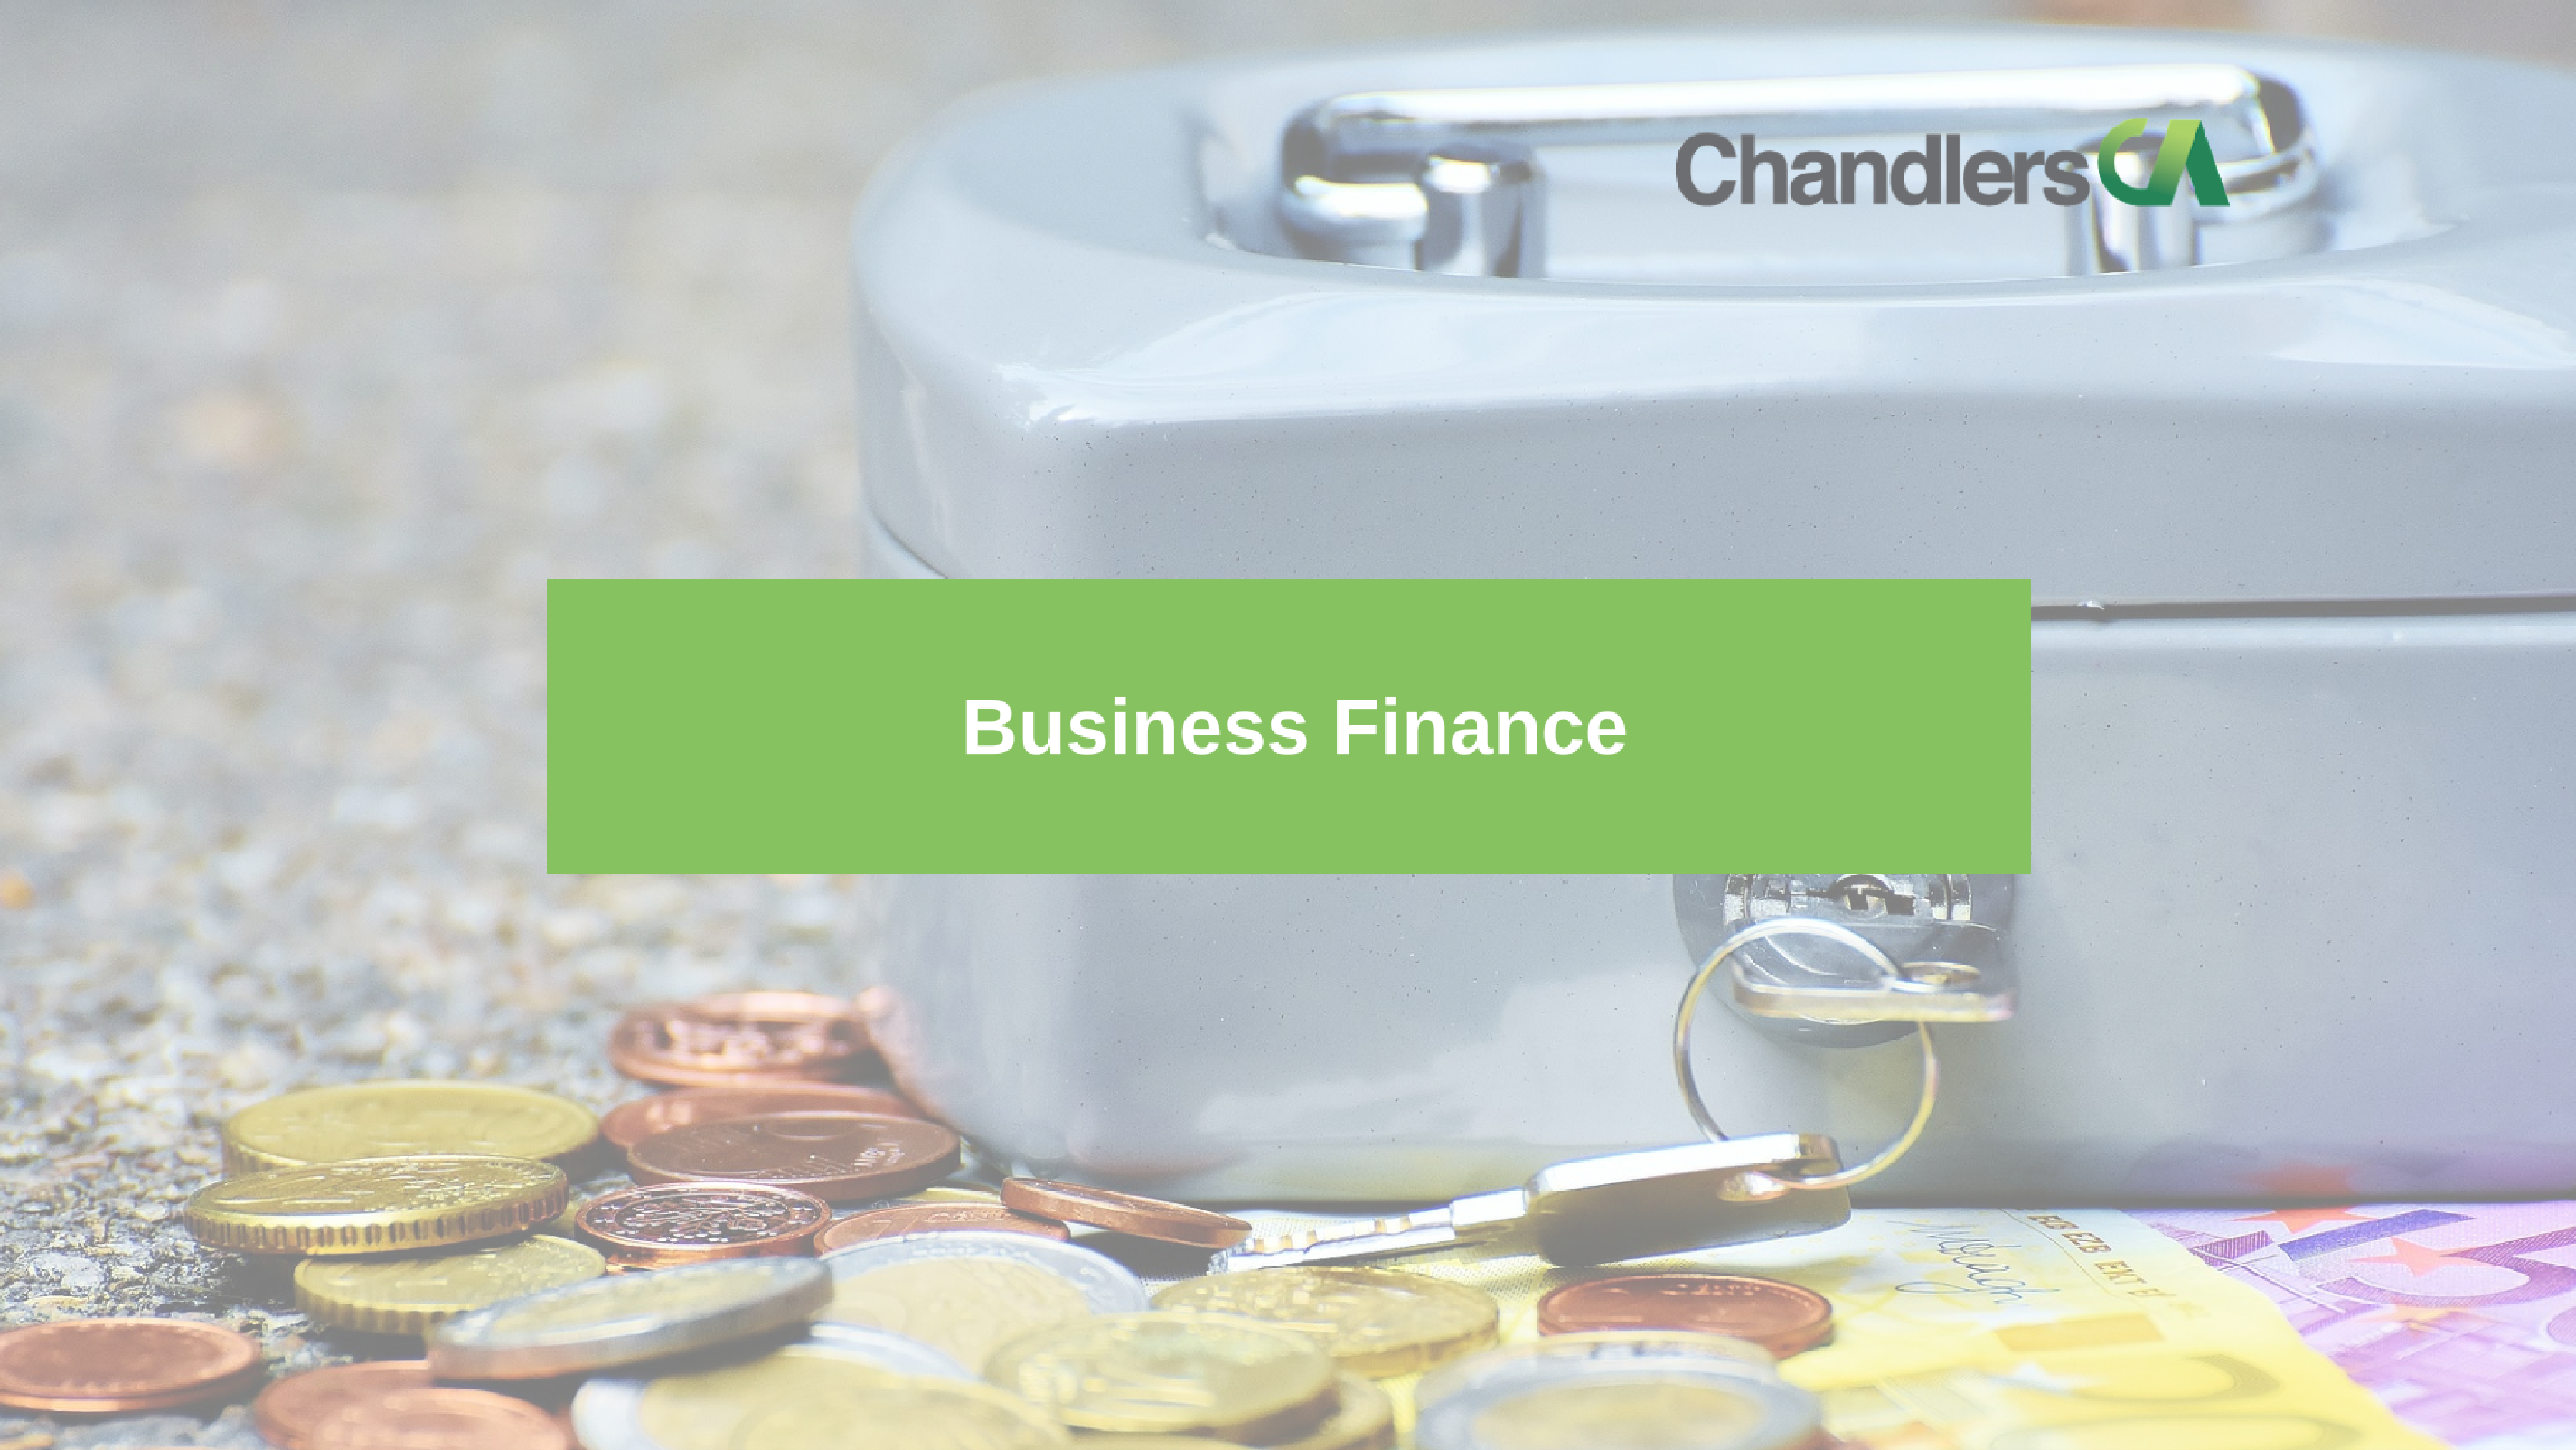 Guide to Business finance for small business owners